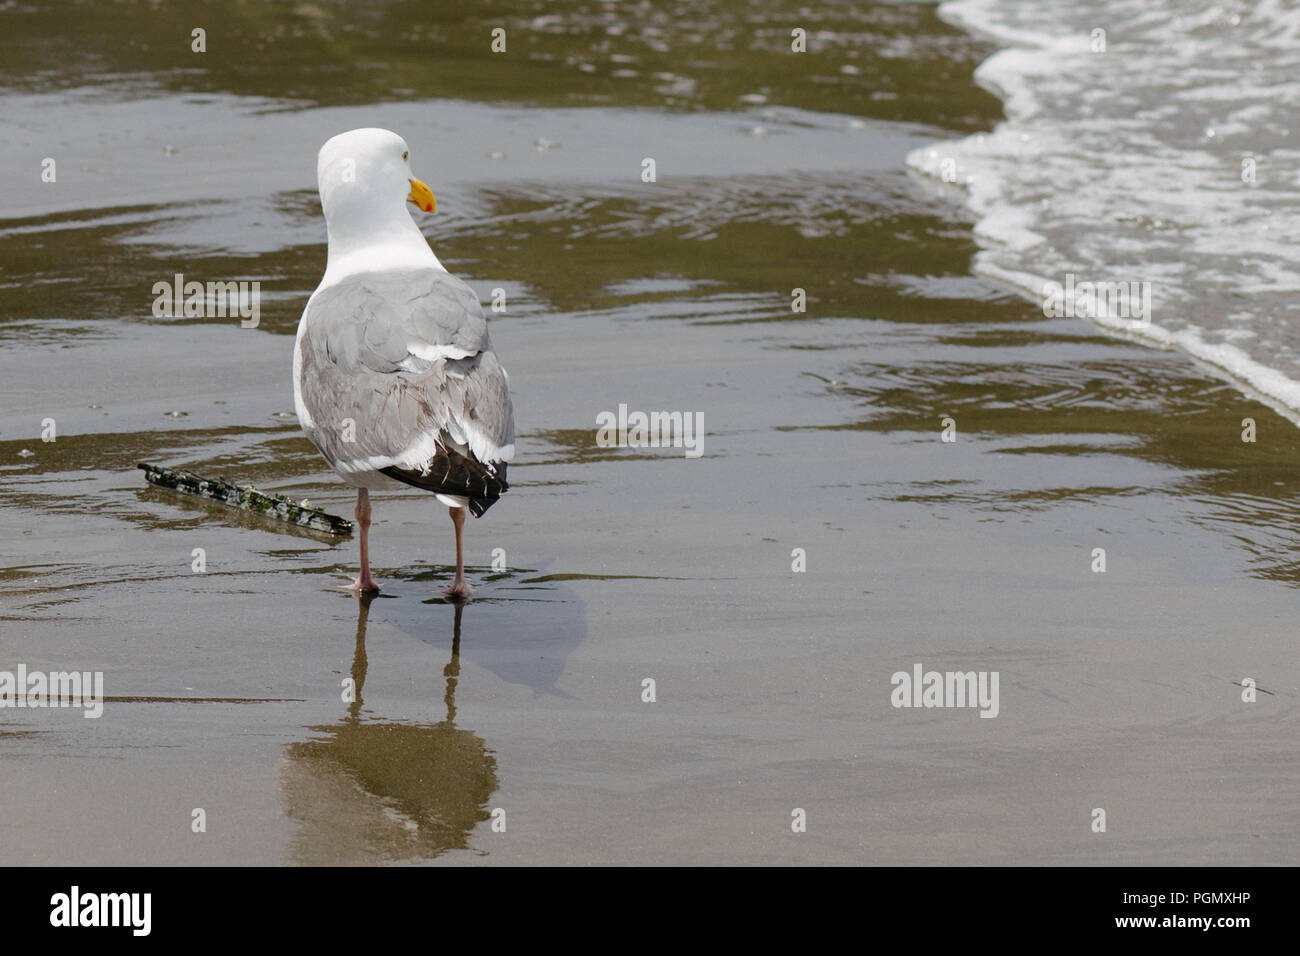 Seagull Looking at Waves on a Sandy Beach, in San Francisco, California, U.S.A. - Stock Image